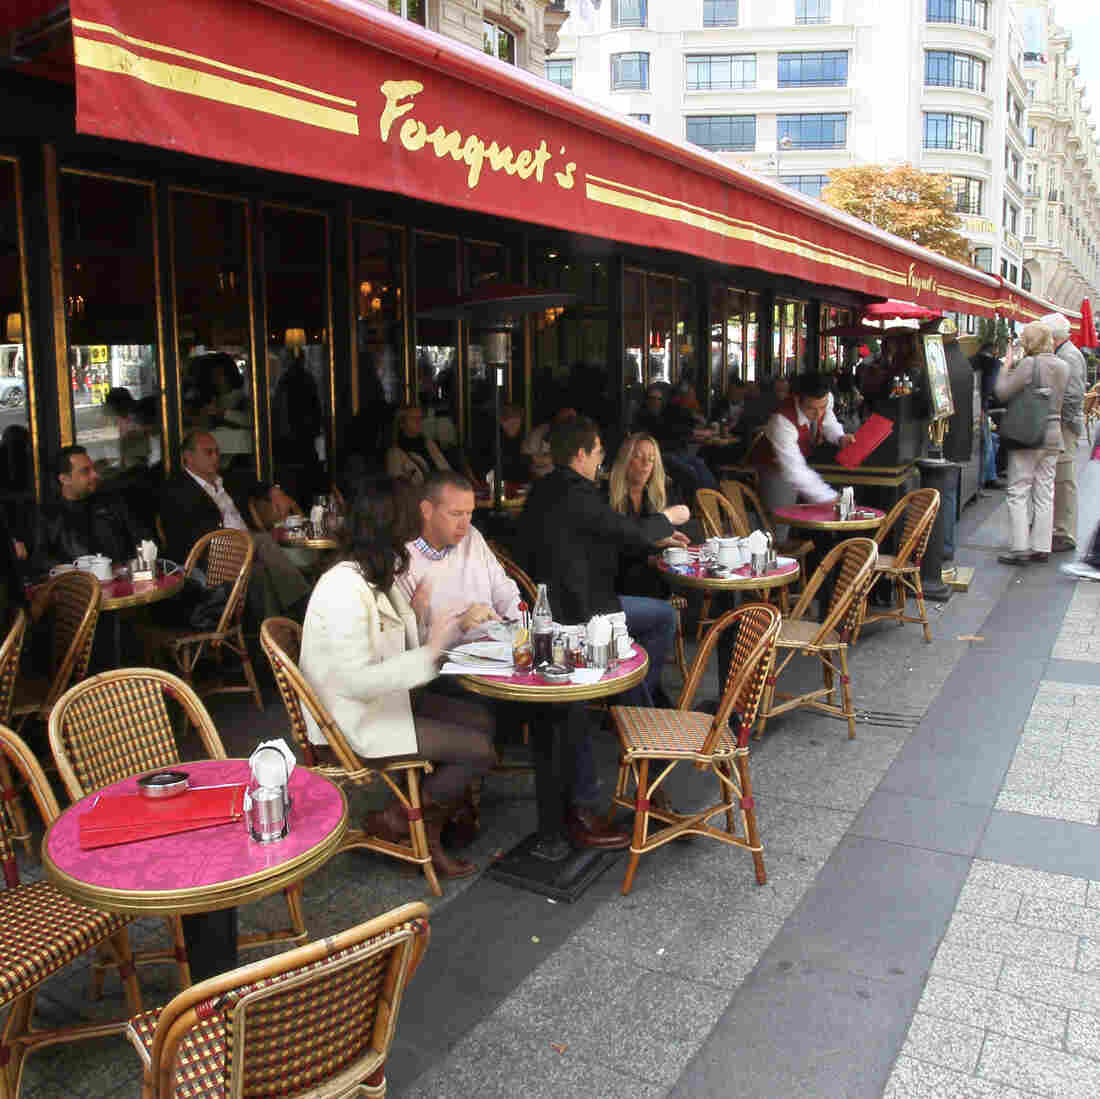 Diners eat at Fouquet's restaurant, a landmark on the Champs Elysees in Paris for more than a century. Traditional cafes and shops are steadily giving way to large global chains.